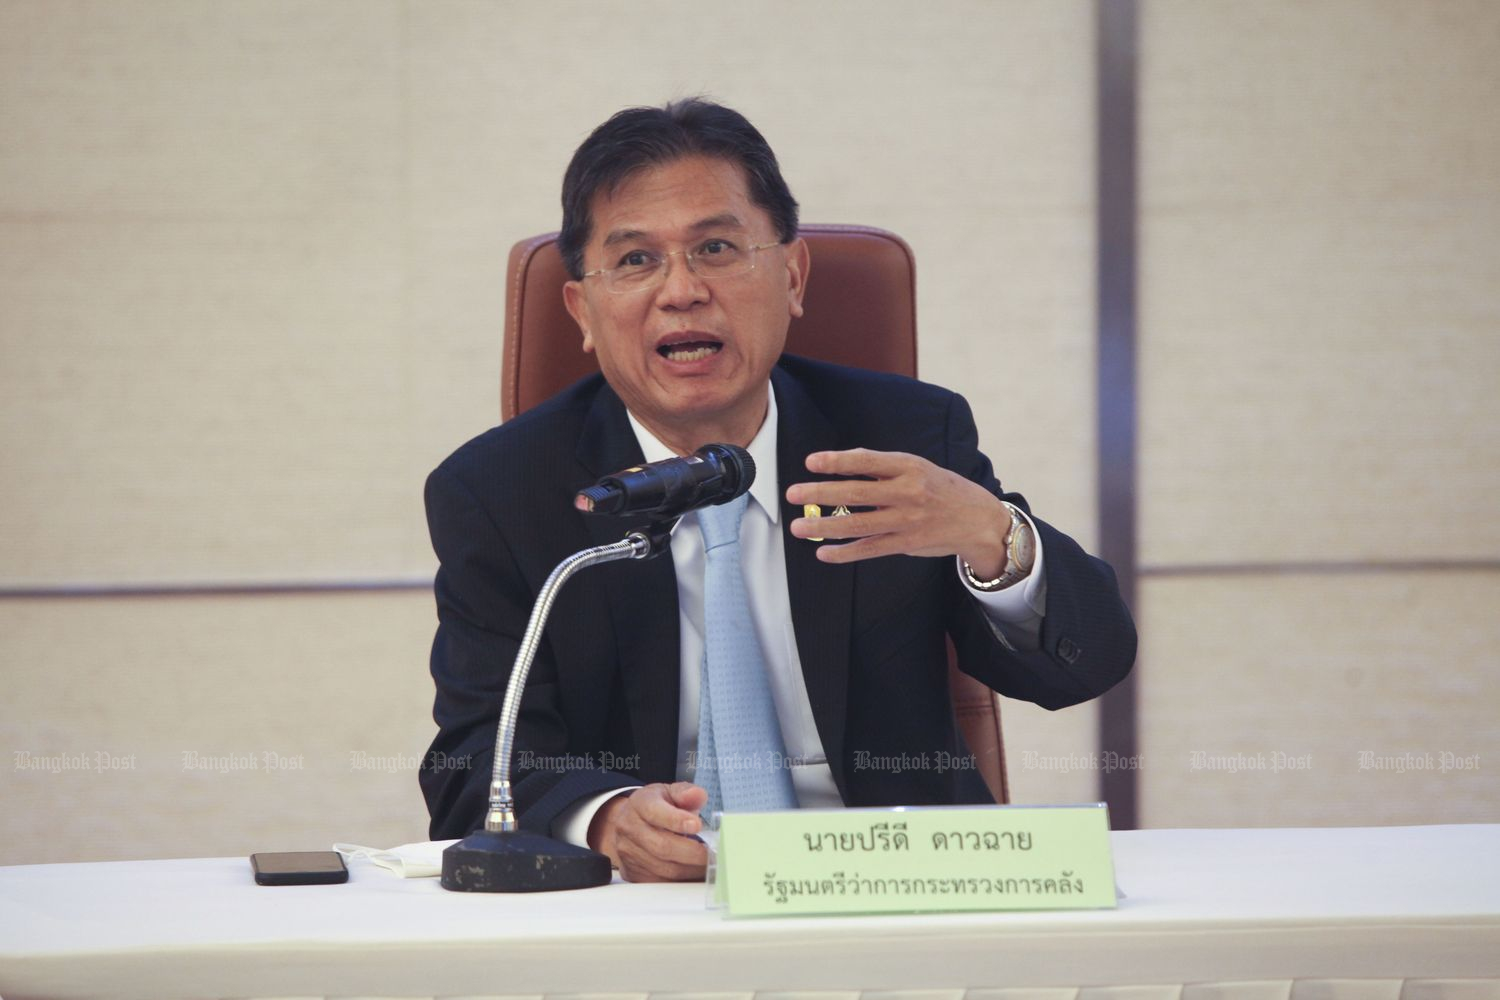 Finance Minister Predee Daochai gestures during a briefing on economic policies at the ministry on Aug 17. He submitted a resignation letter on Tuesday. (Photo by Arnun Chonmahatrakool)